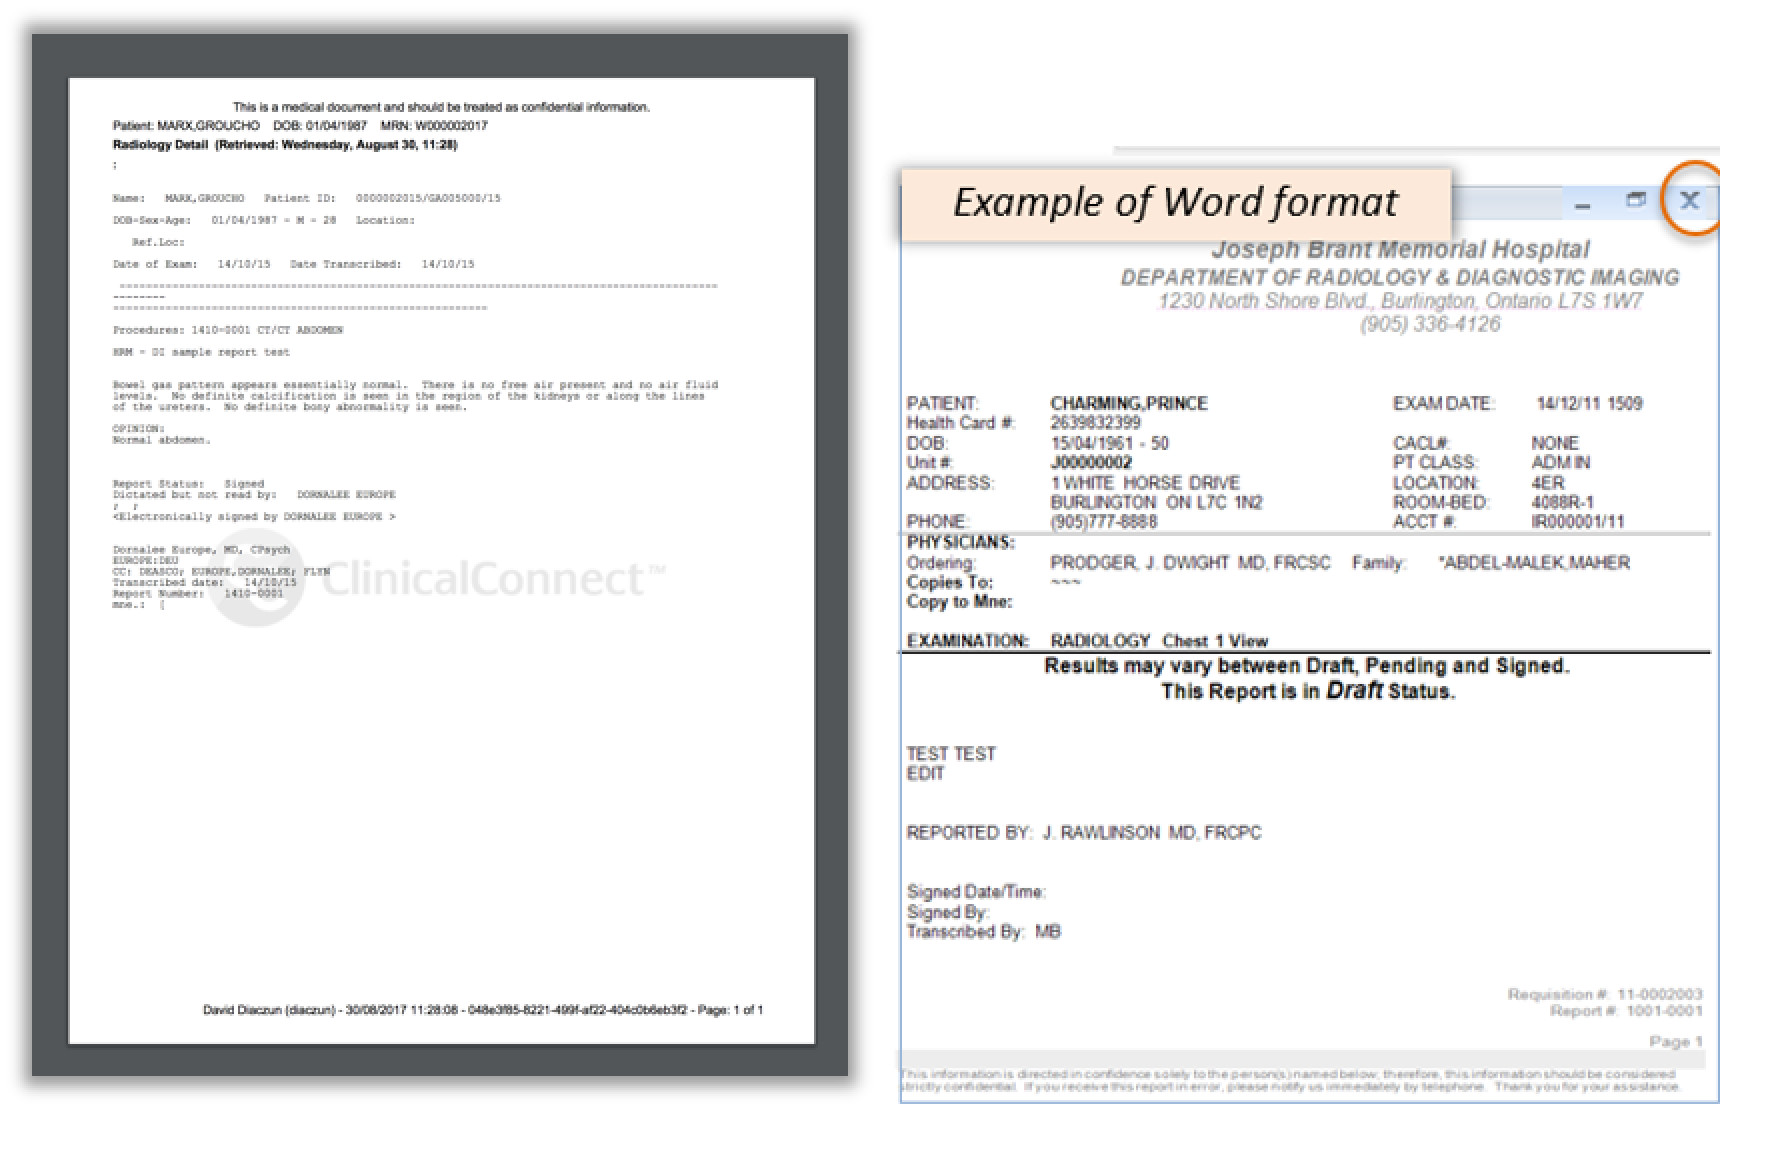 image of the print preview of the document that needs to be printed